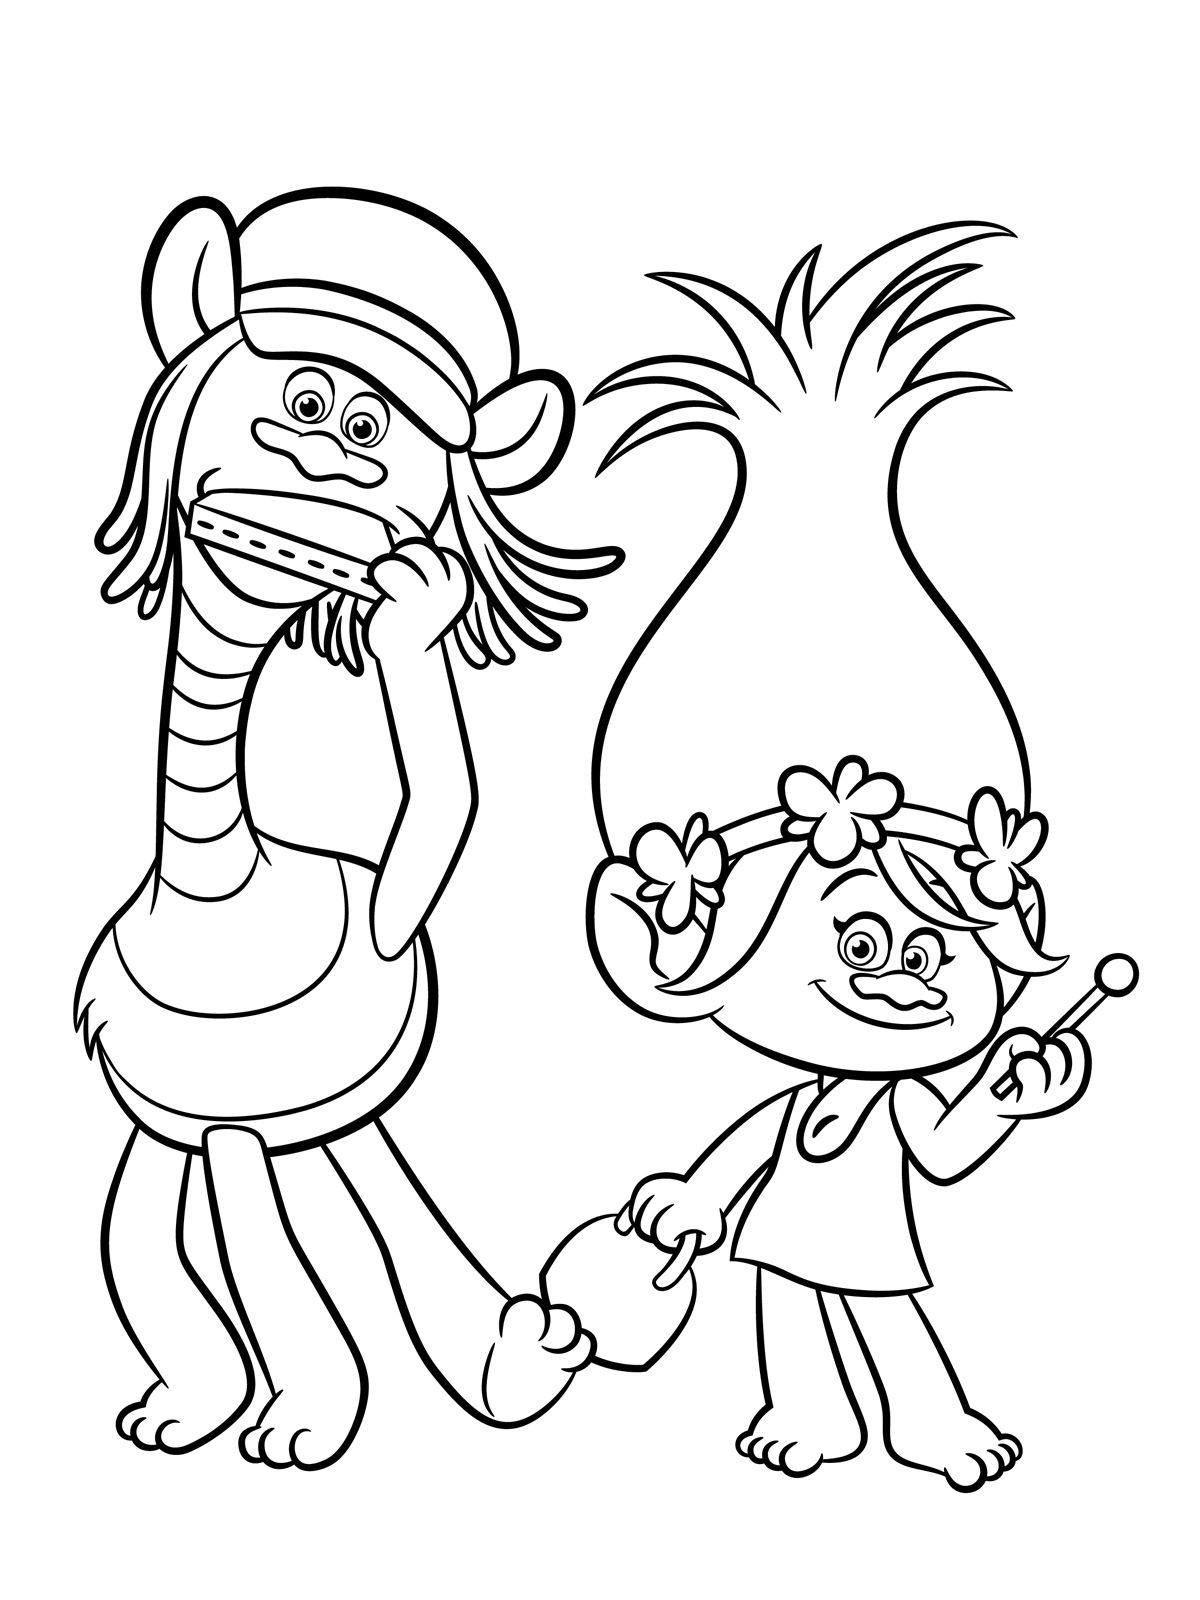 free coloring pages of disney characters disney coloring pages for your children coloring pages pages coloring characters of disney free